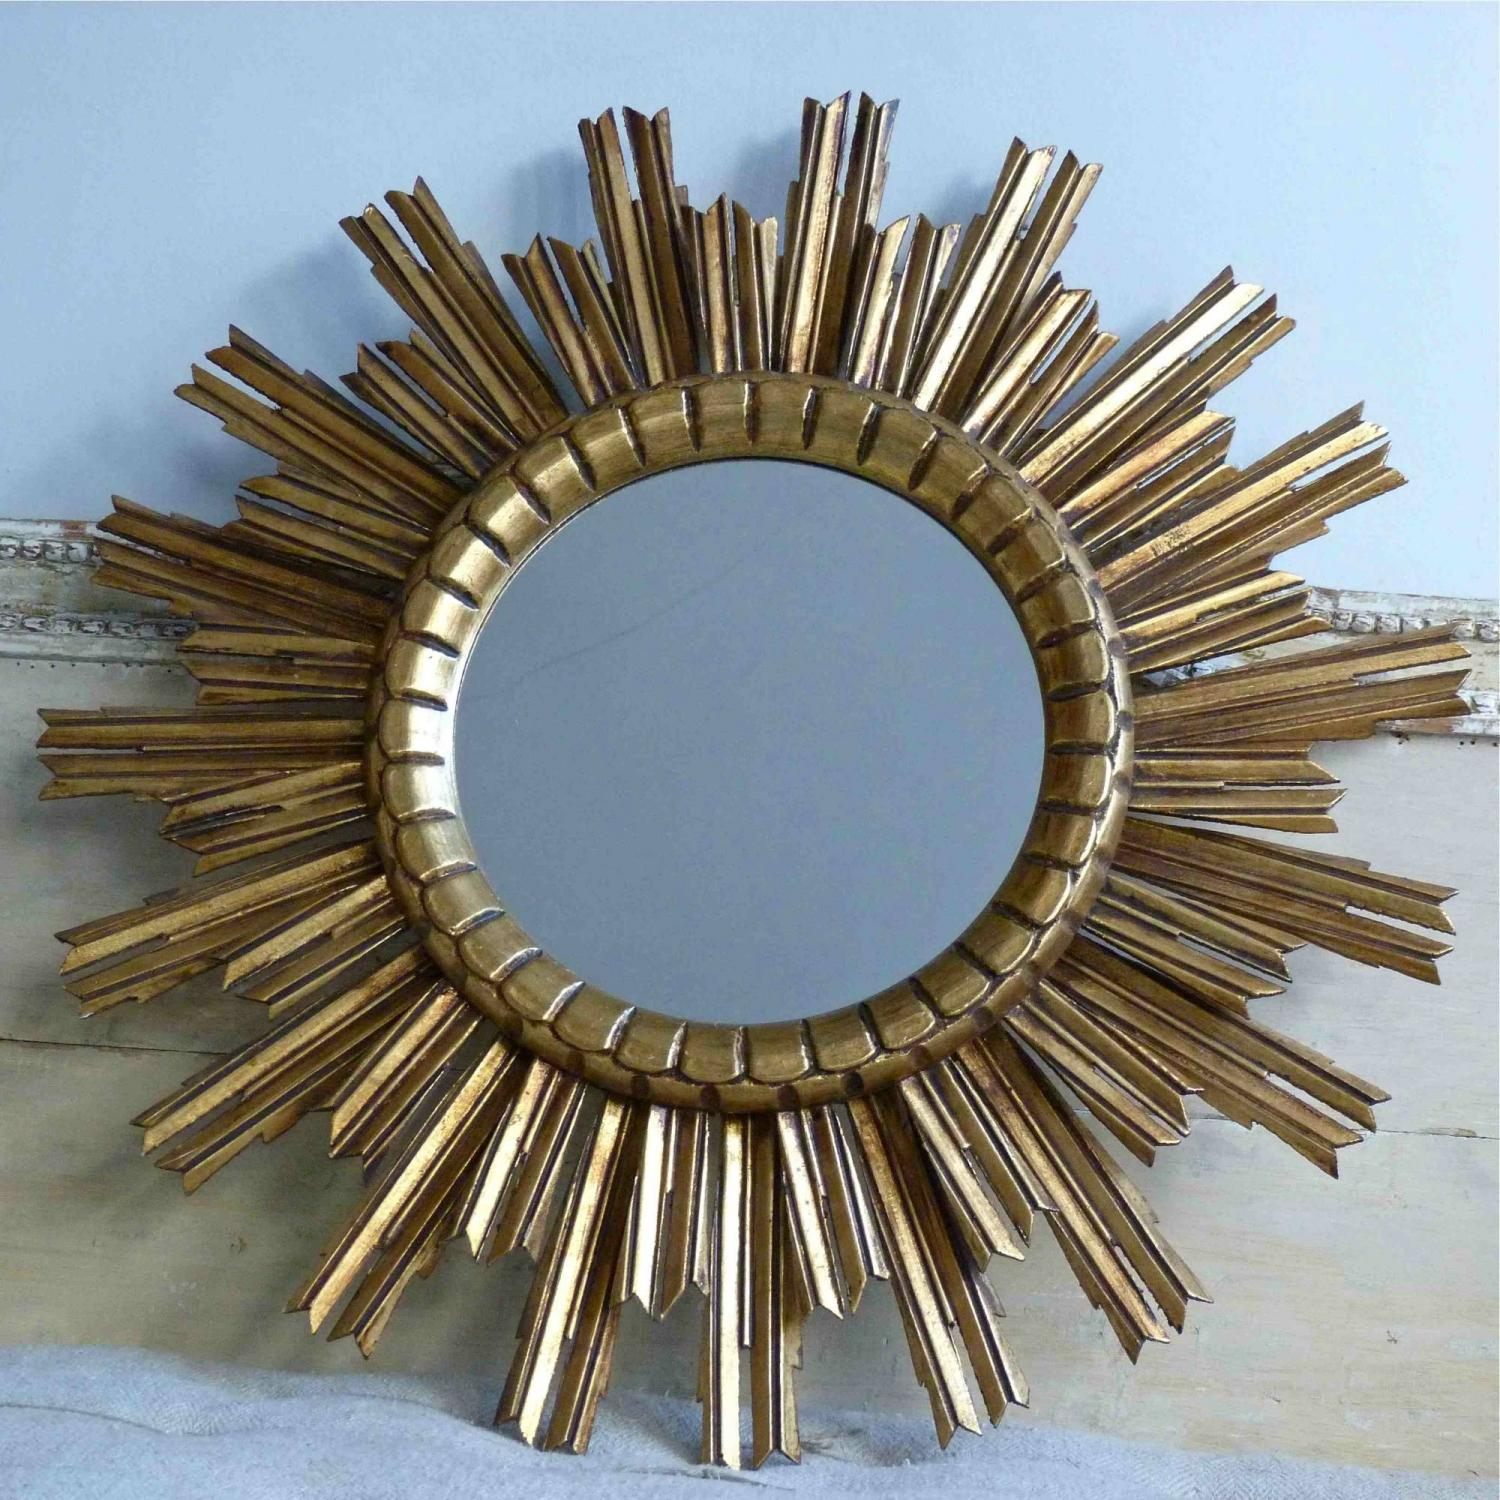 BEAUTIFUL DOUBLE ROW SUNBURST MIRROR